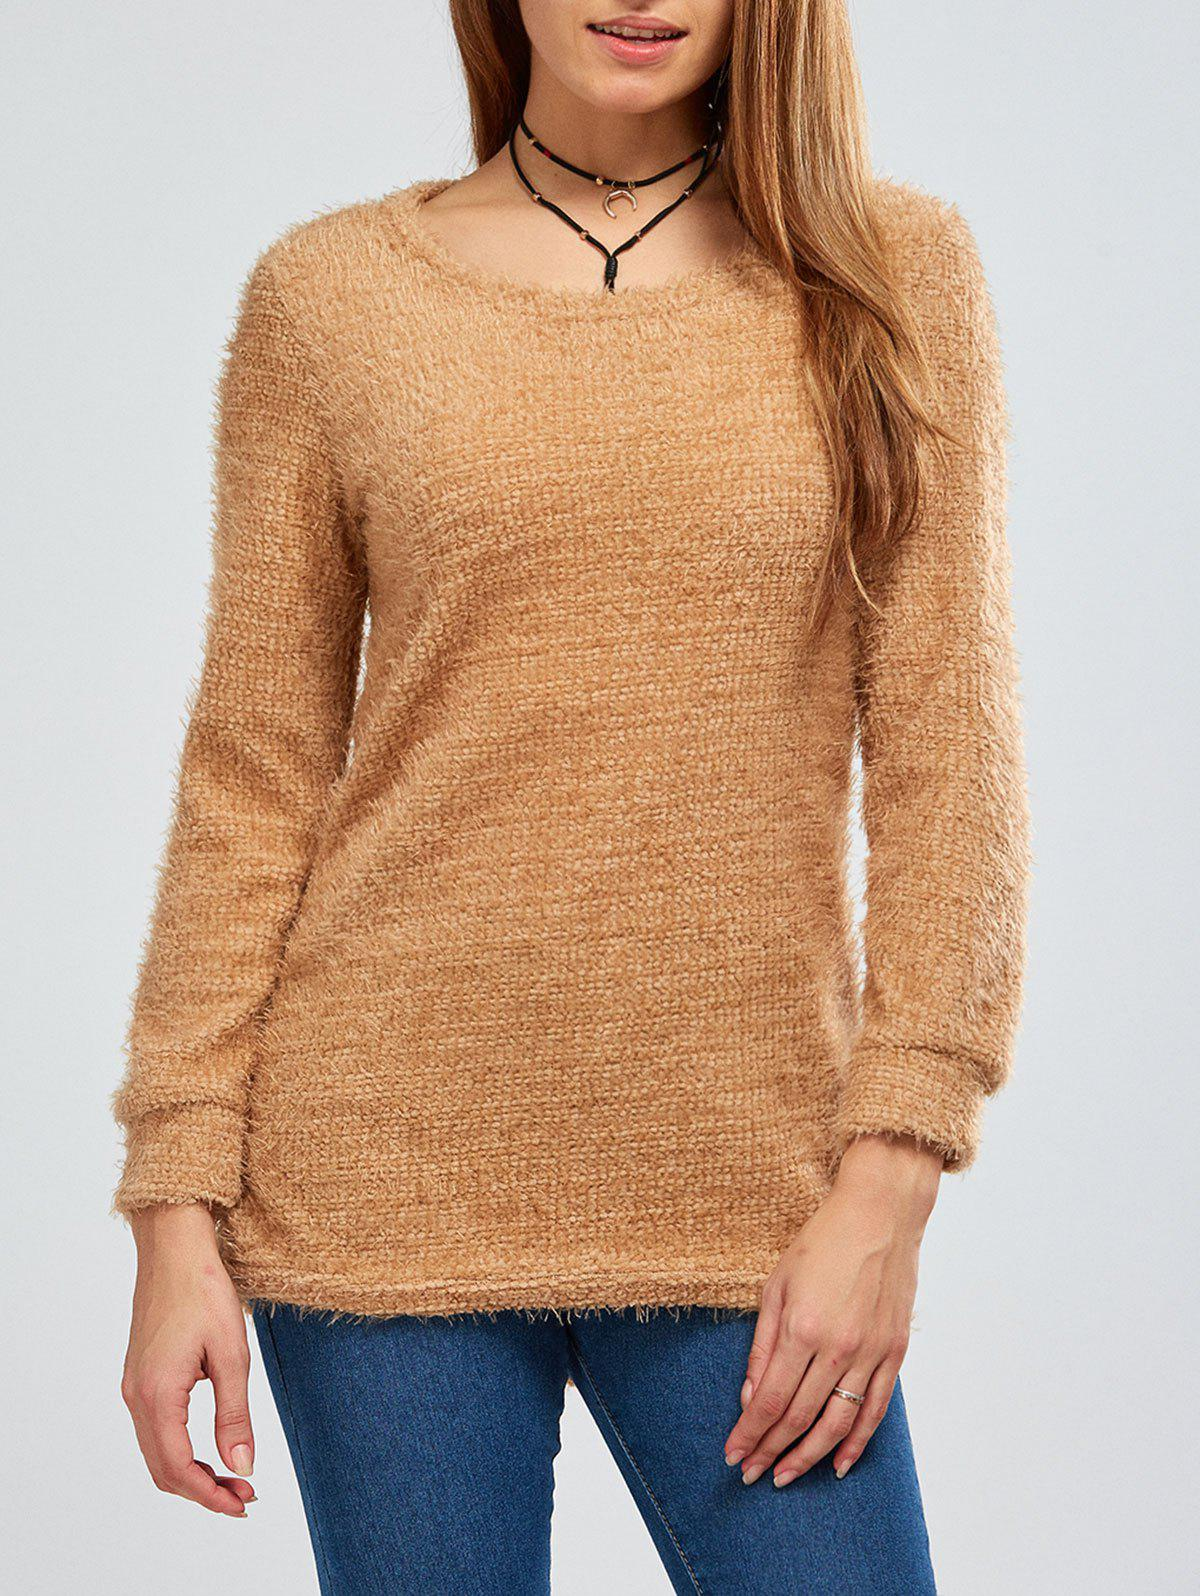 Fuzzy Knit Pullover Sweater fuzzy linear regression